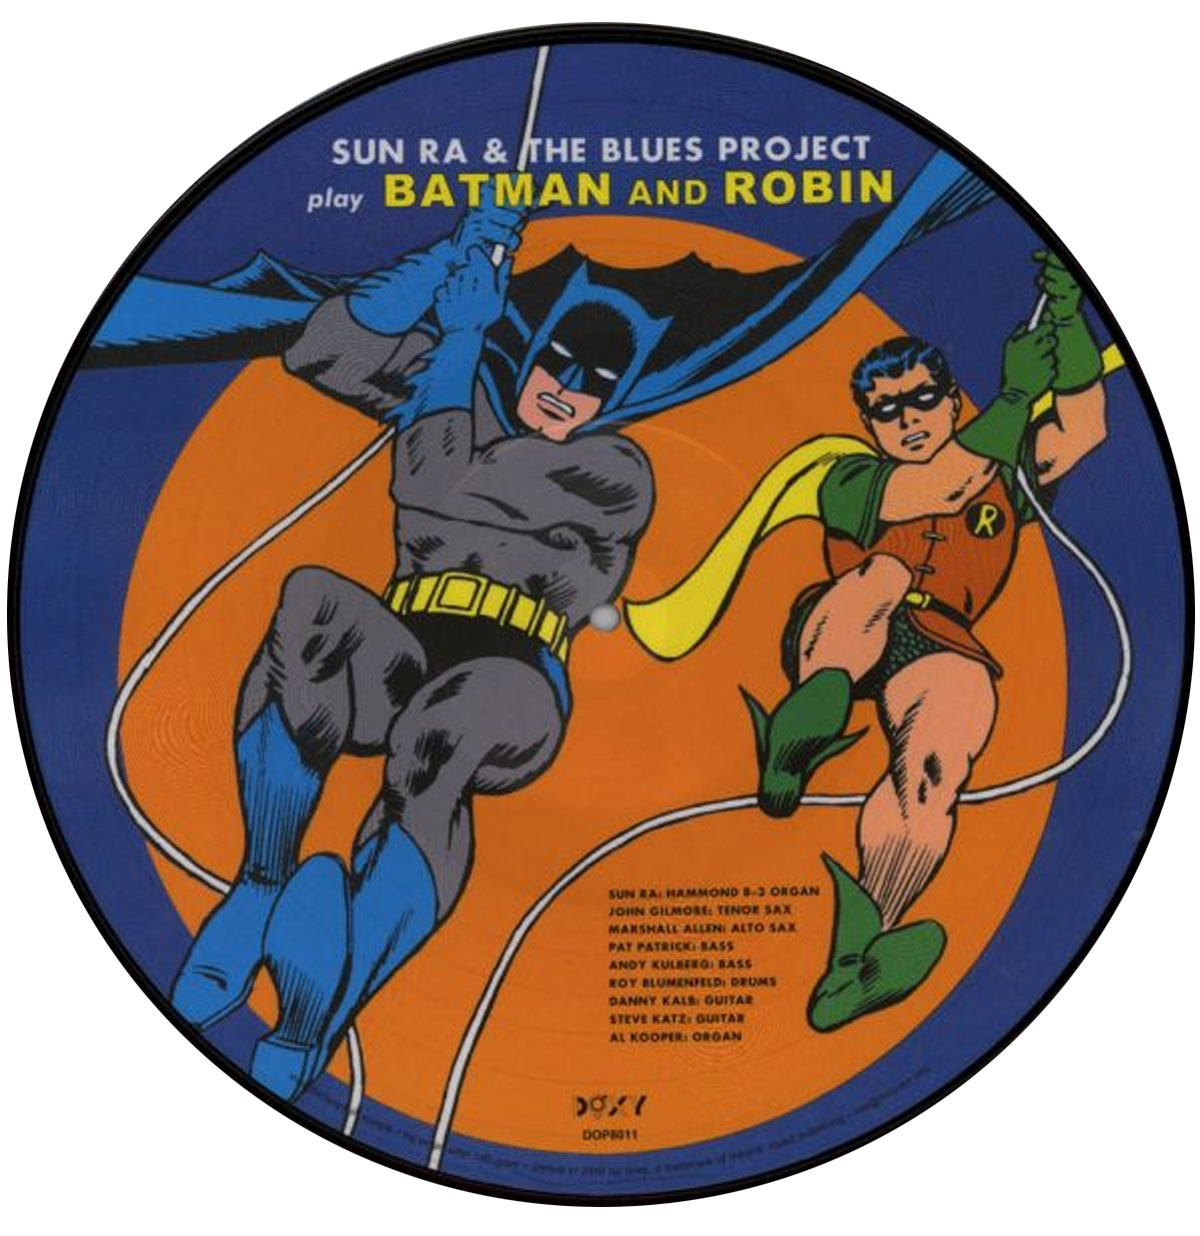 Sun RA & The Blues Project - Batman And Robin LP Picture Disc